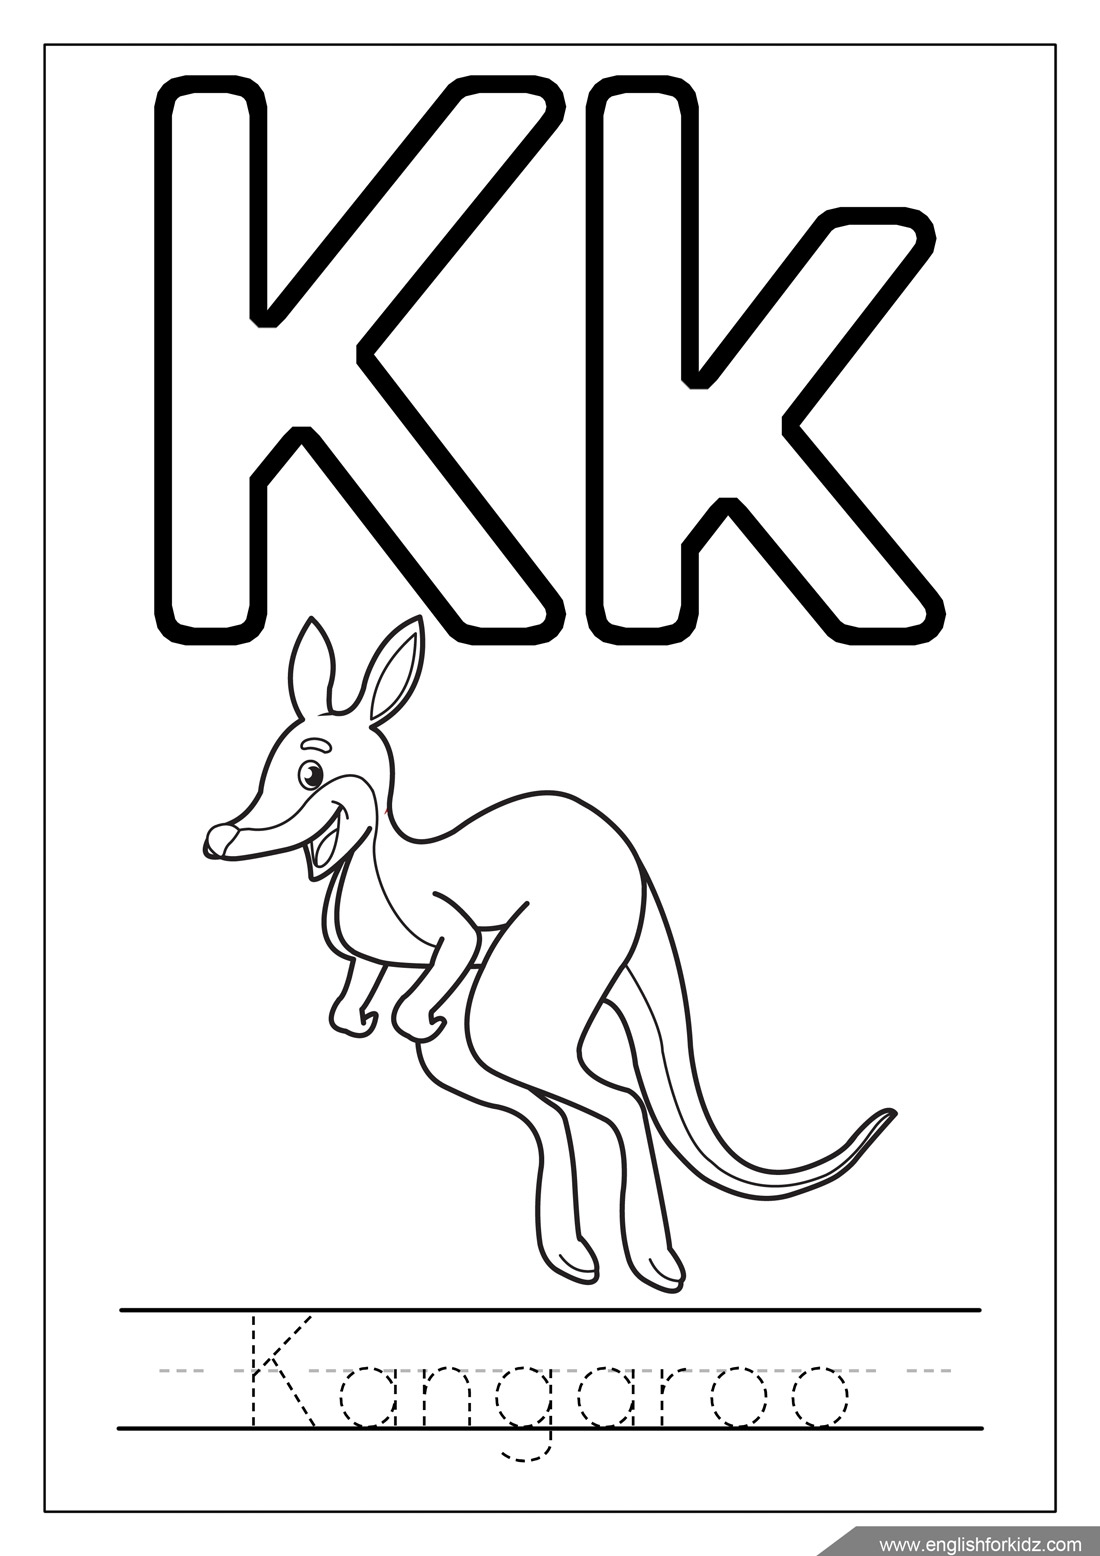 K Coloring Pages At Getcolorings